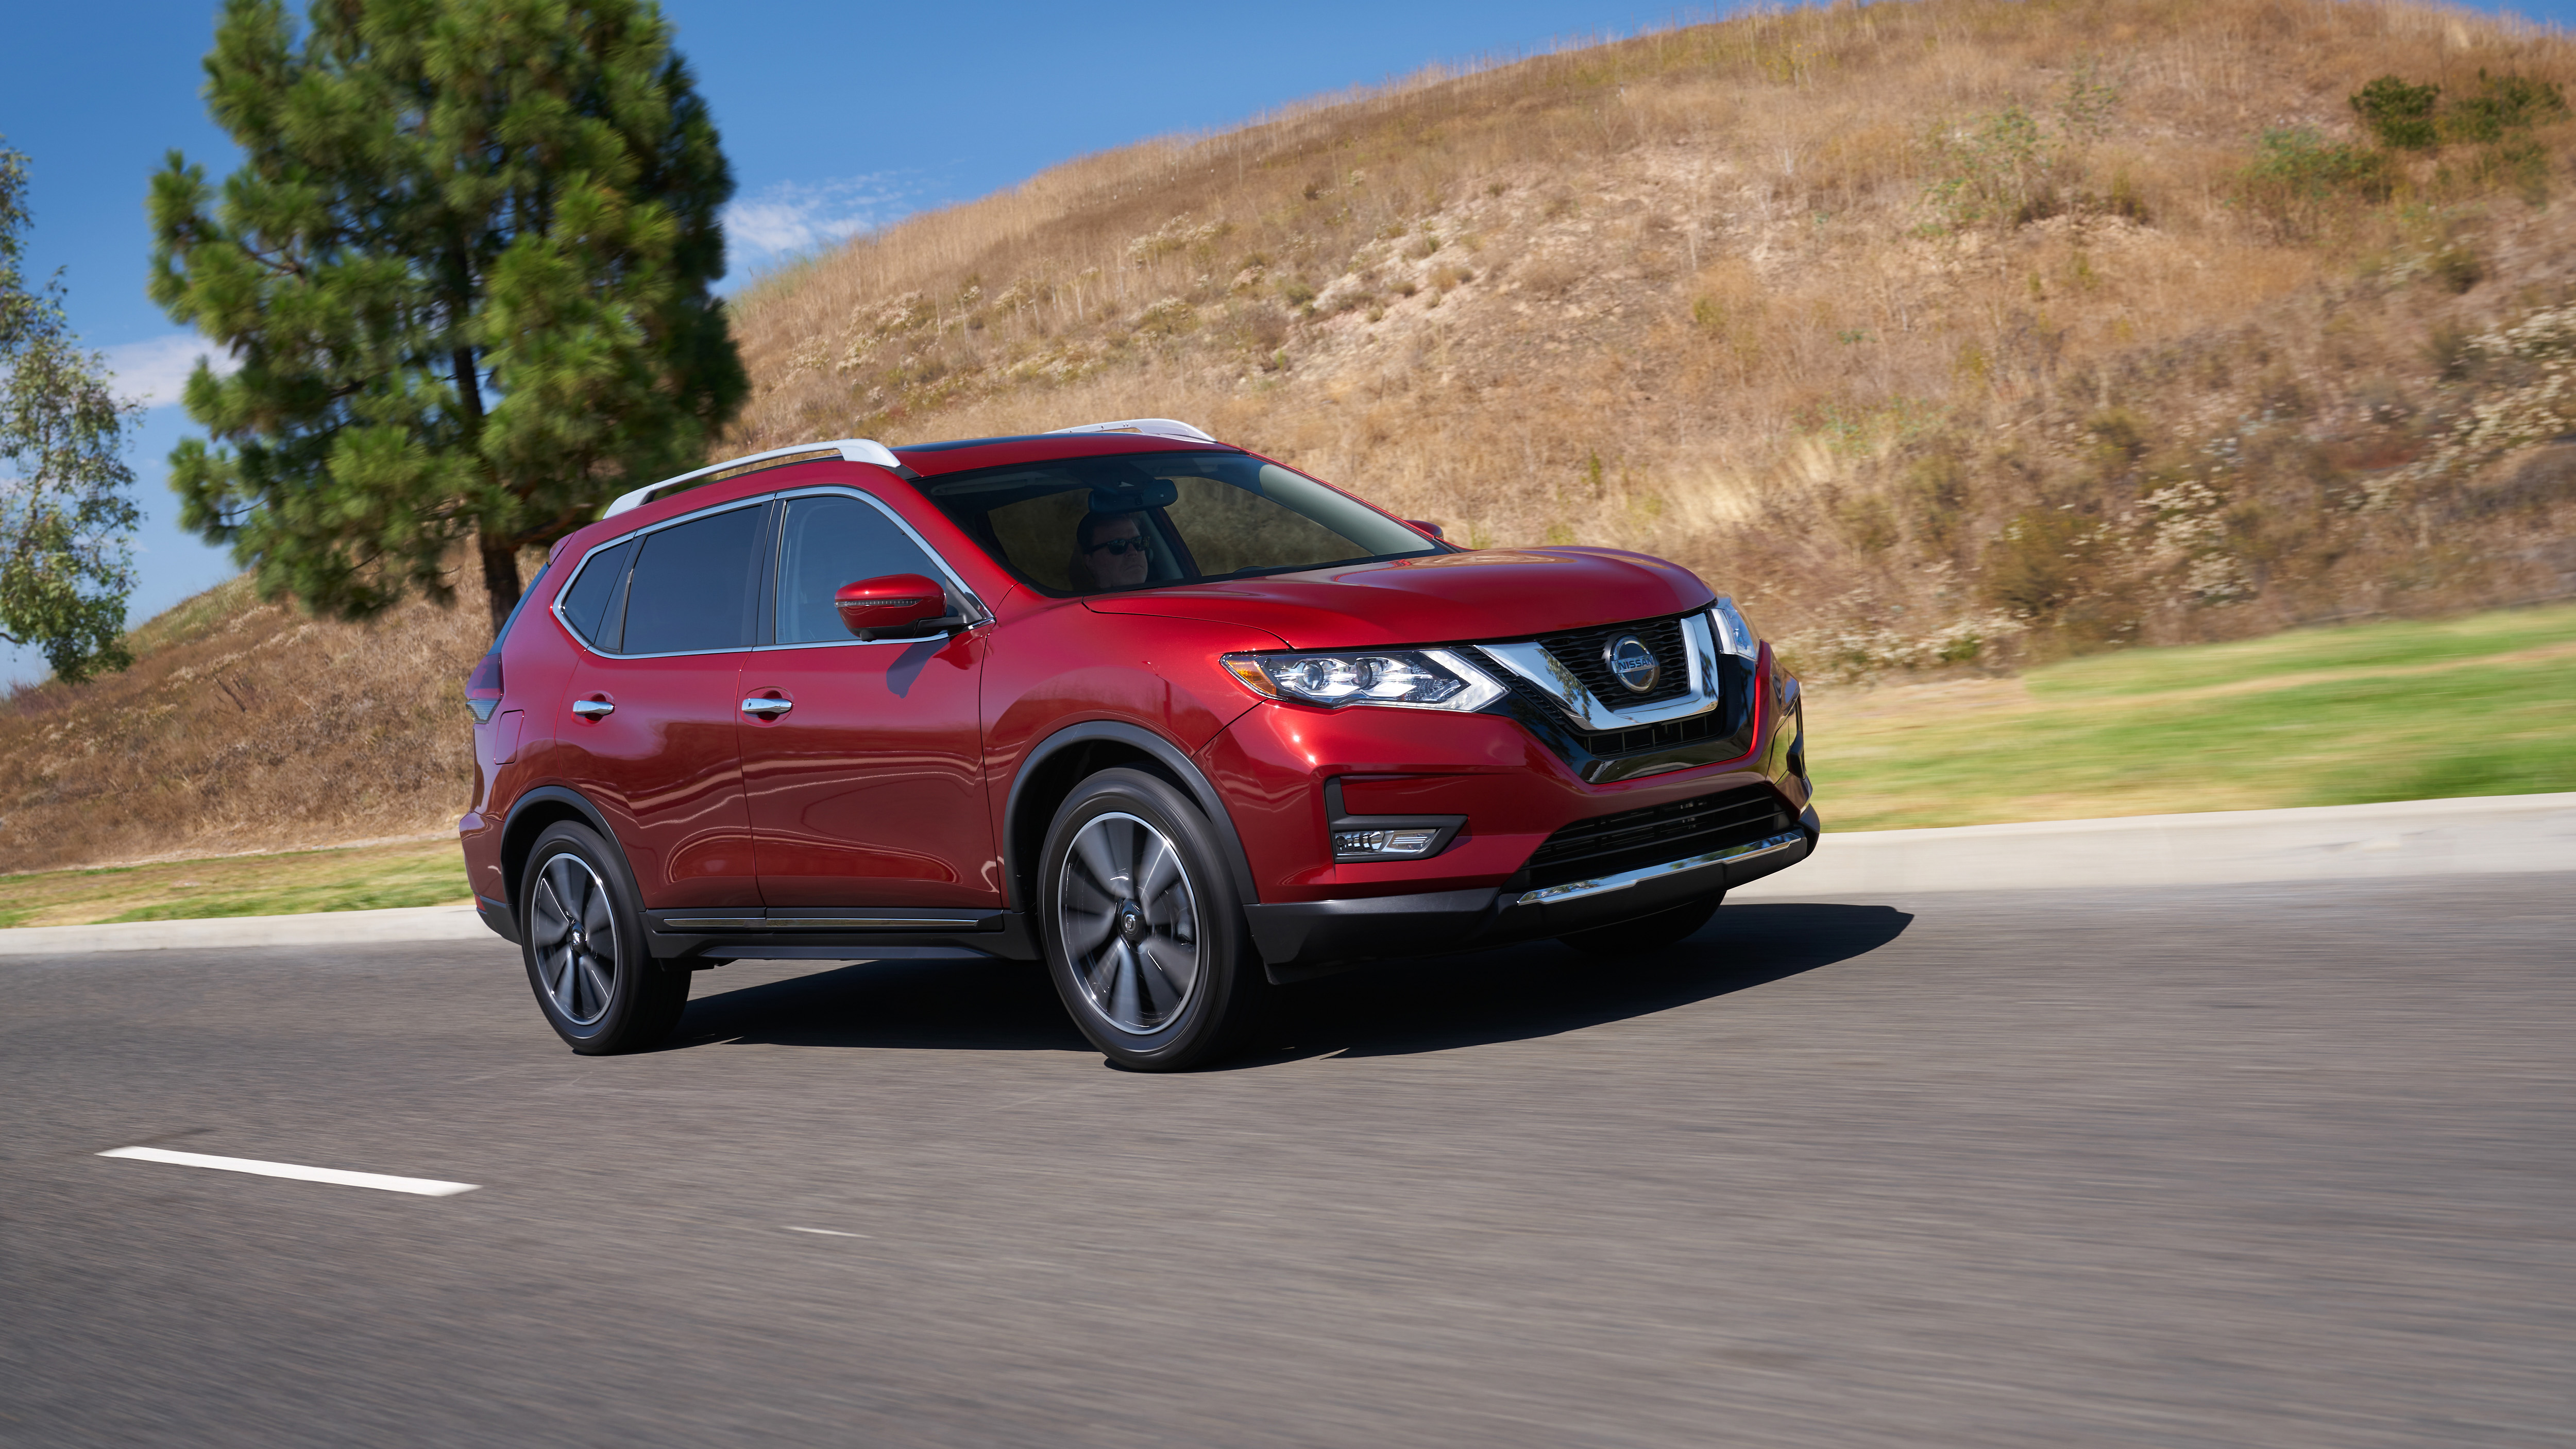 2020 Nissan Rogue Photo Gallery Autoblog